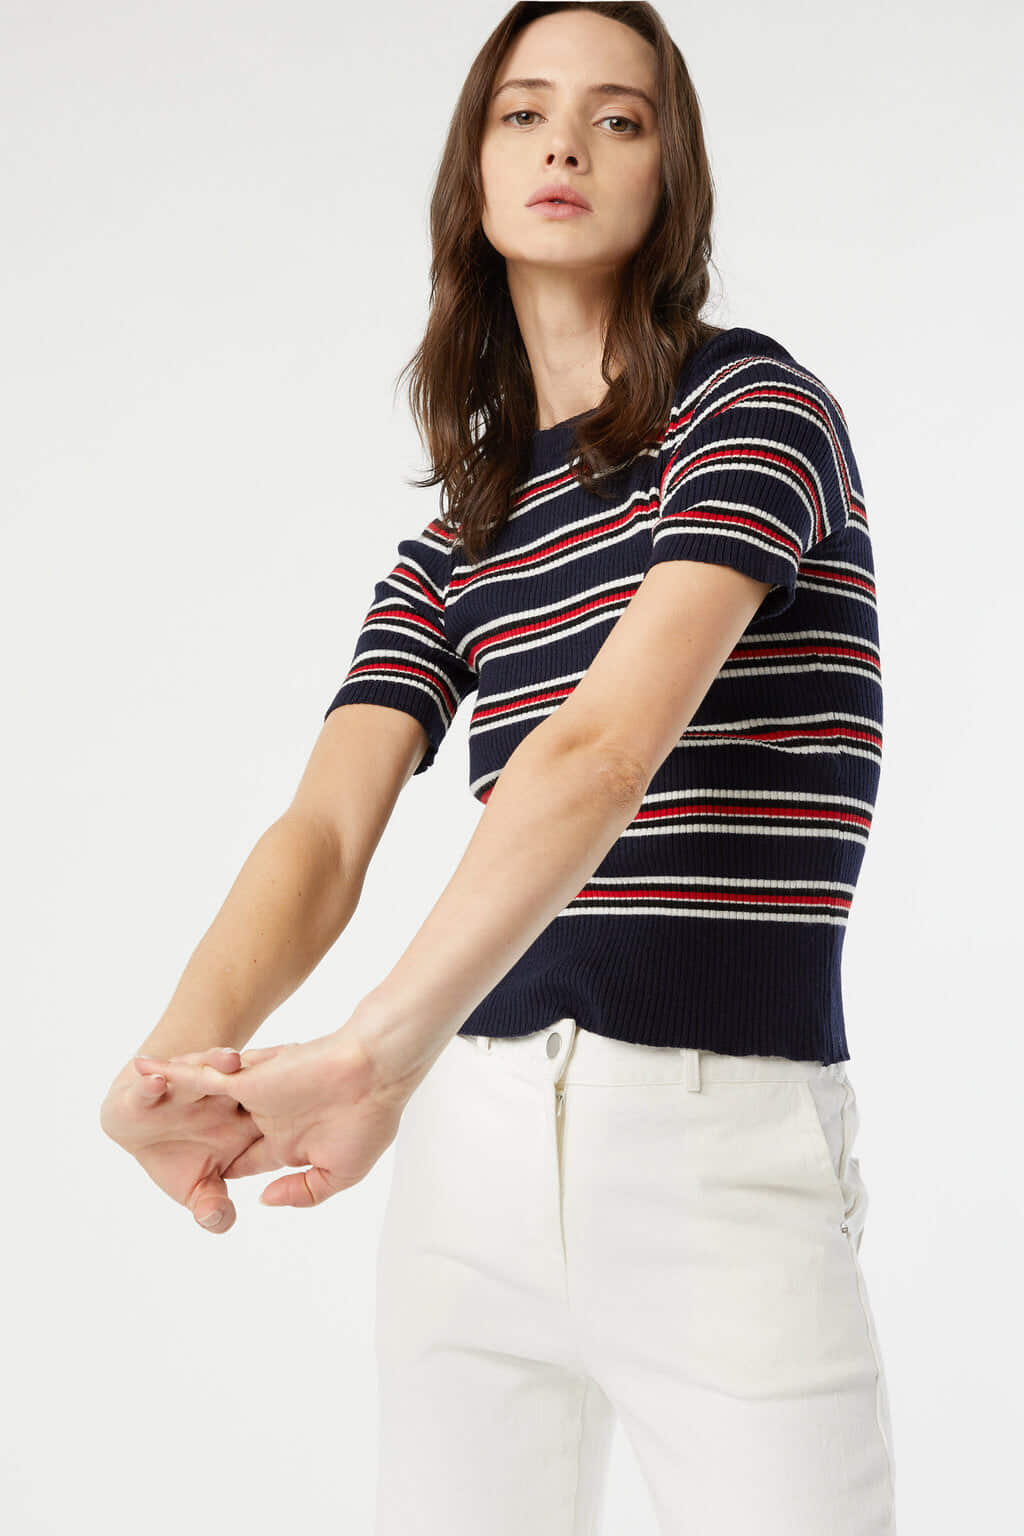 TShirt 3611 Red Blue Stripe 1